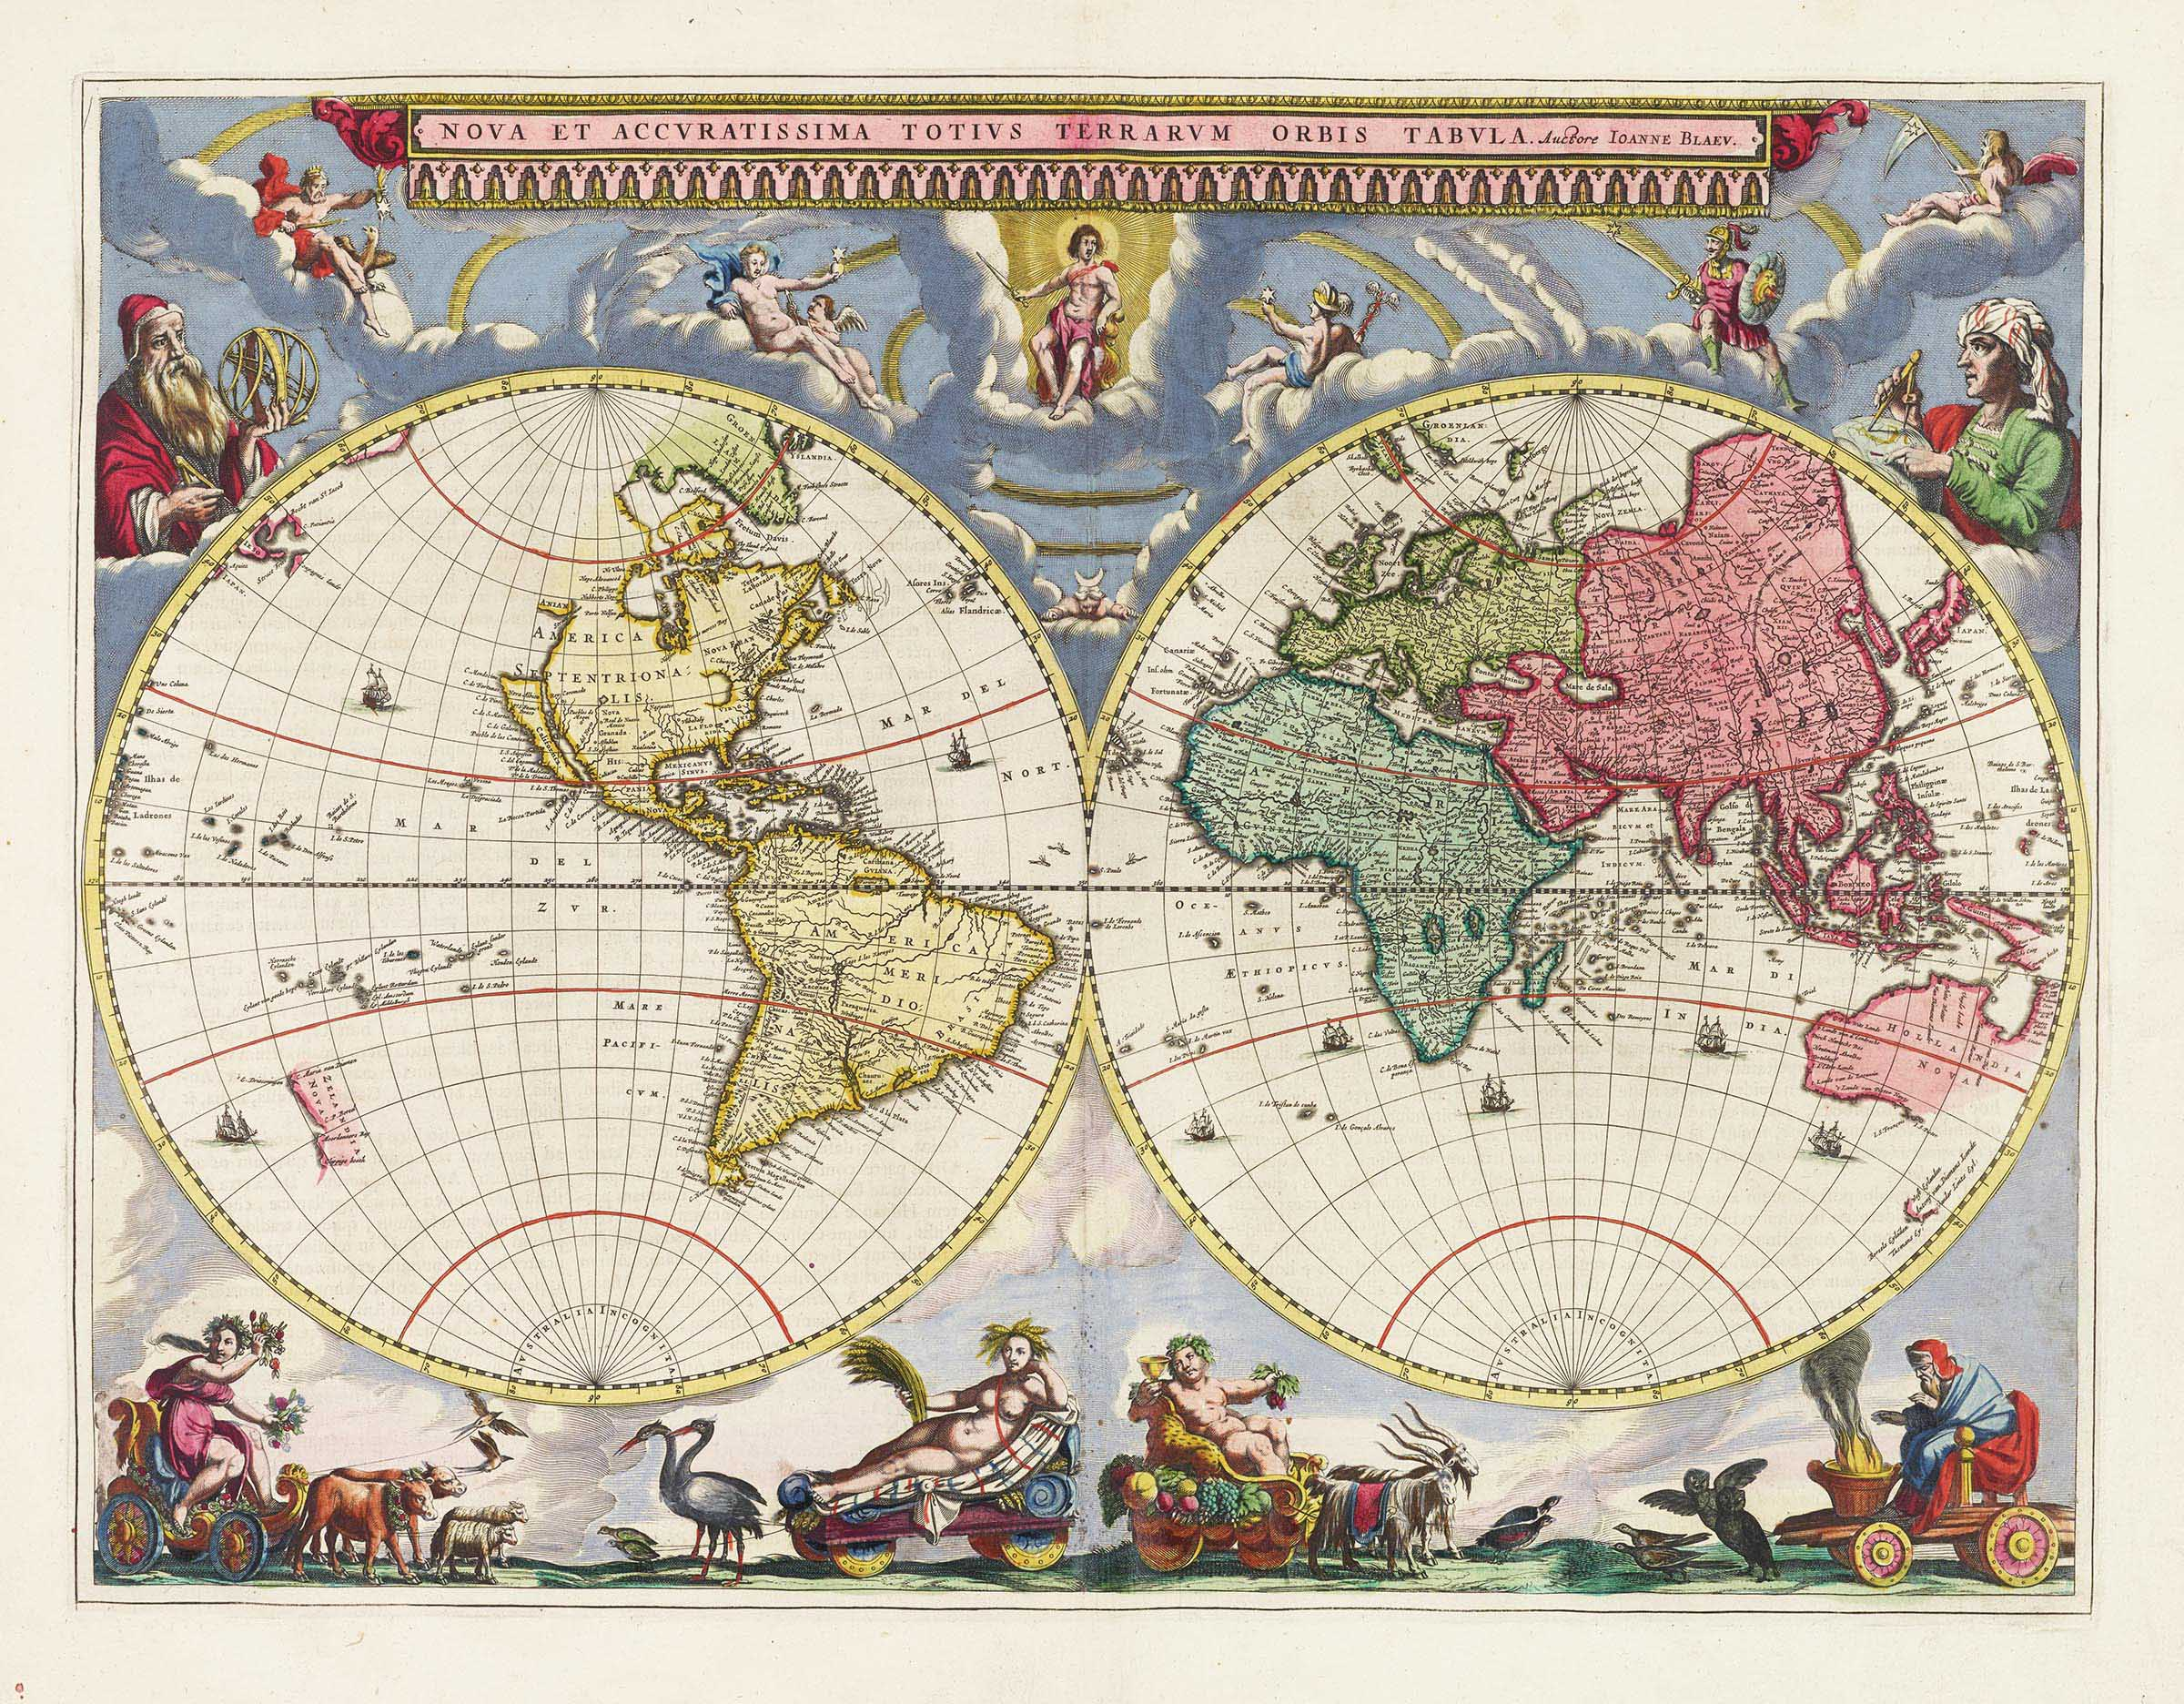 image of the Blaeu Atlas